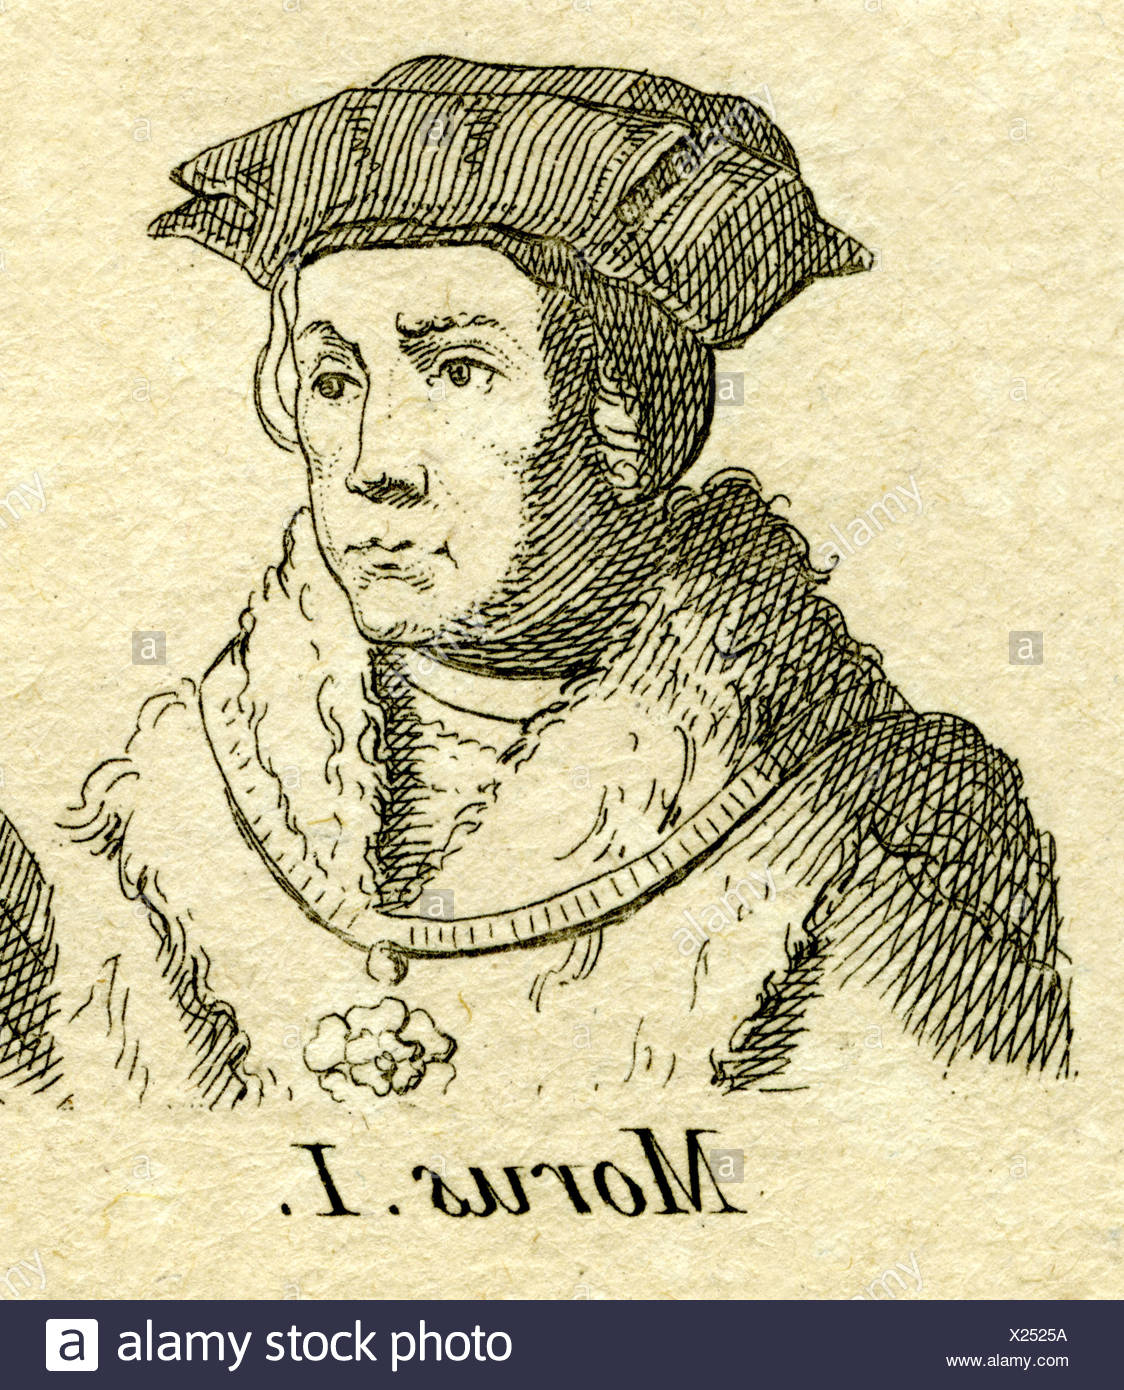 More, Thomas, 7.2.1478 - 6.7.1535, English philosopher and politician, portrait, engraving, 18th century, , Artist's Copyright has not to be cleared - Stock Image